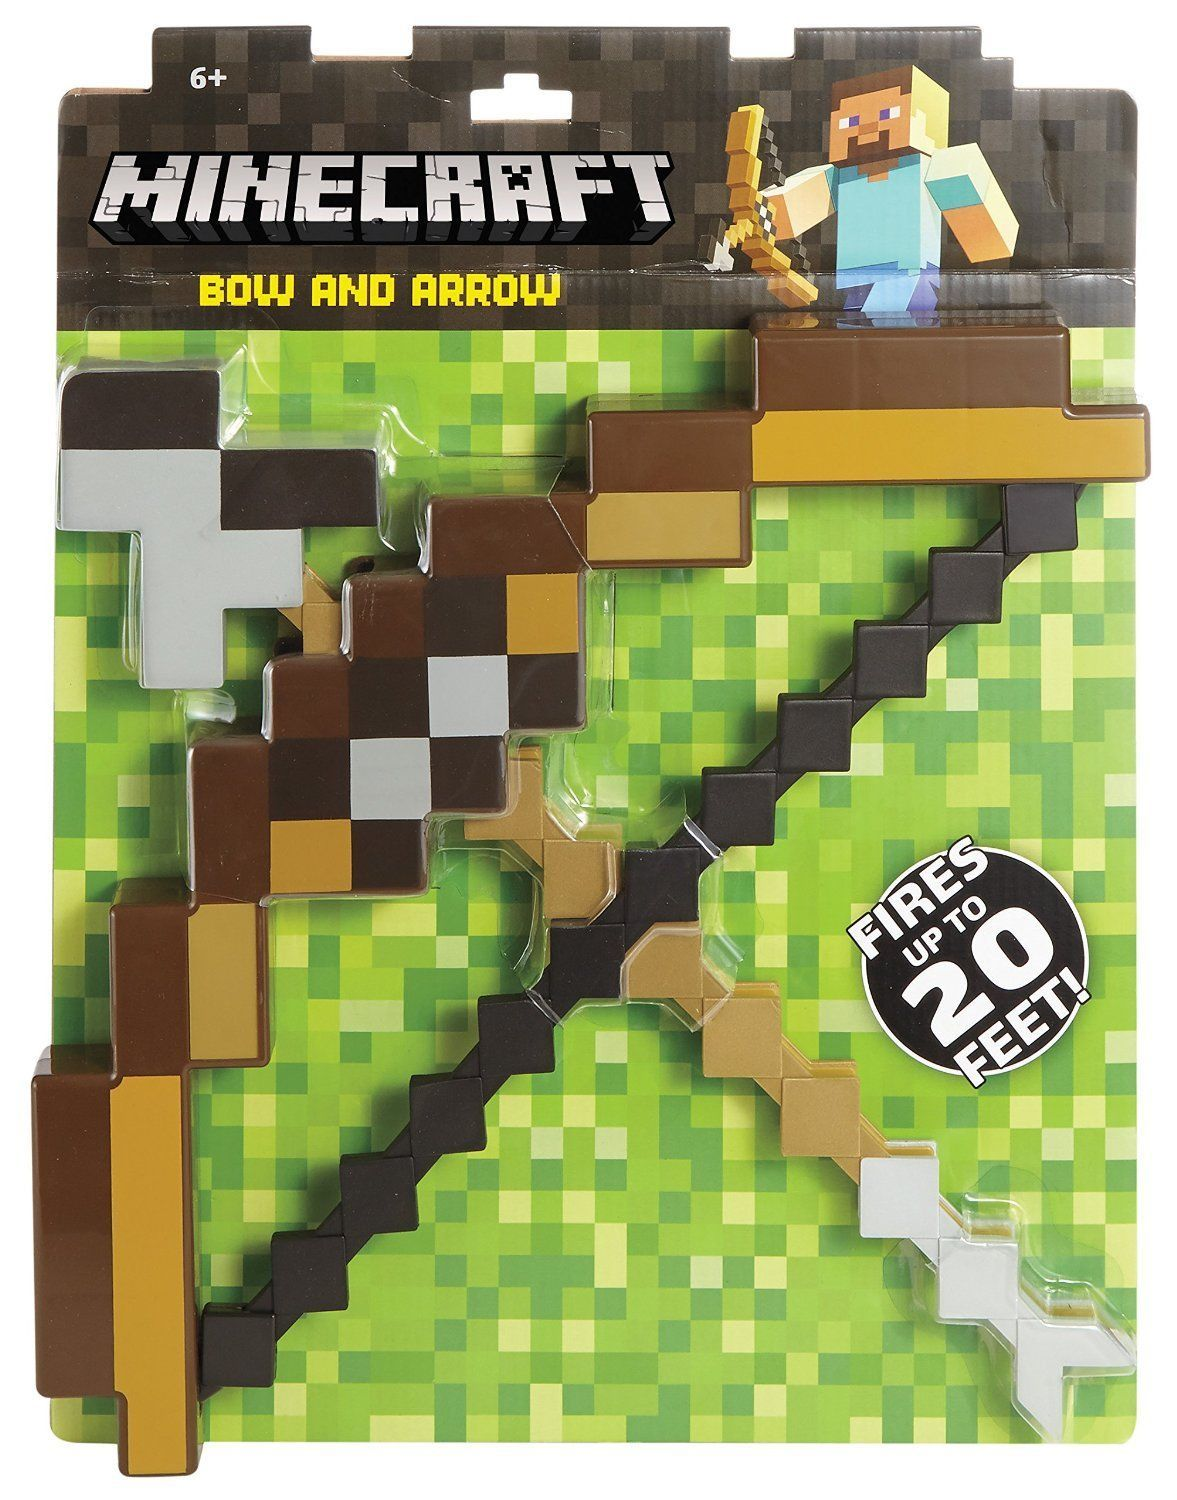 Walmart Minecraft Toys For Boys : Minecraft bow and arrow